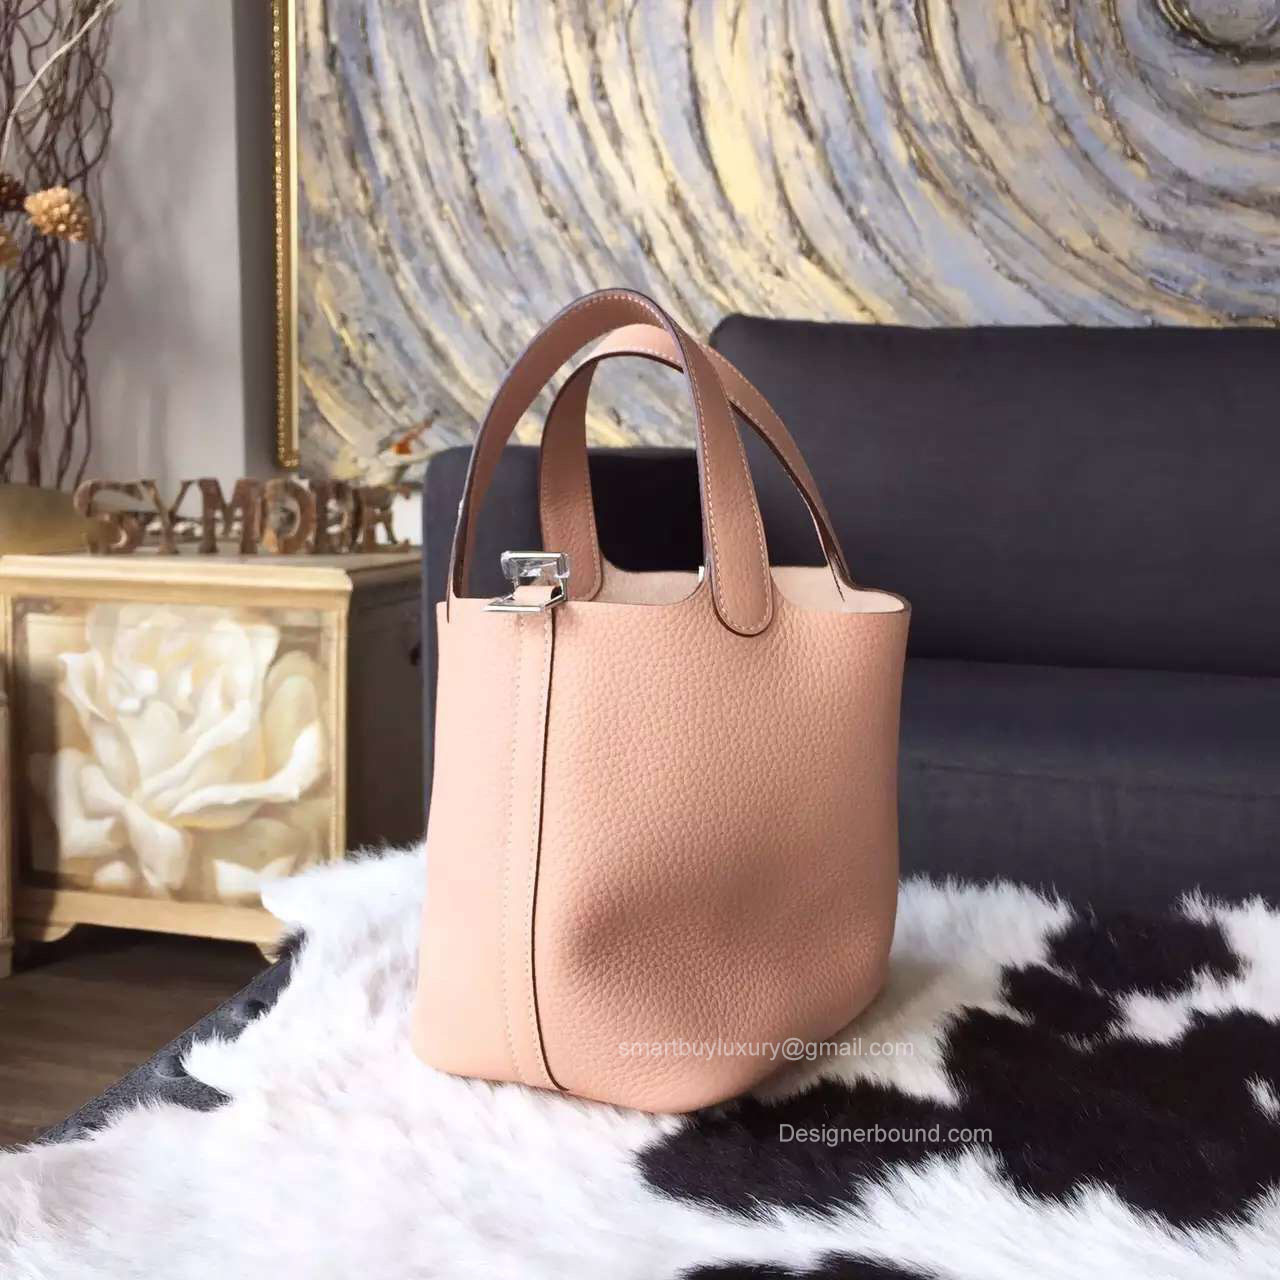 66861488f181 Hermes Picotin Lock 18 Bag Nude Pink Taurillon Clemence Handstitched